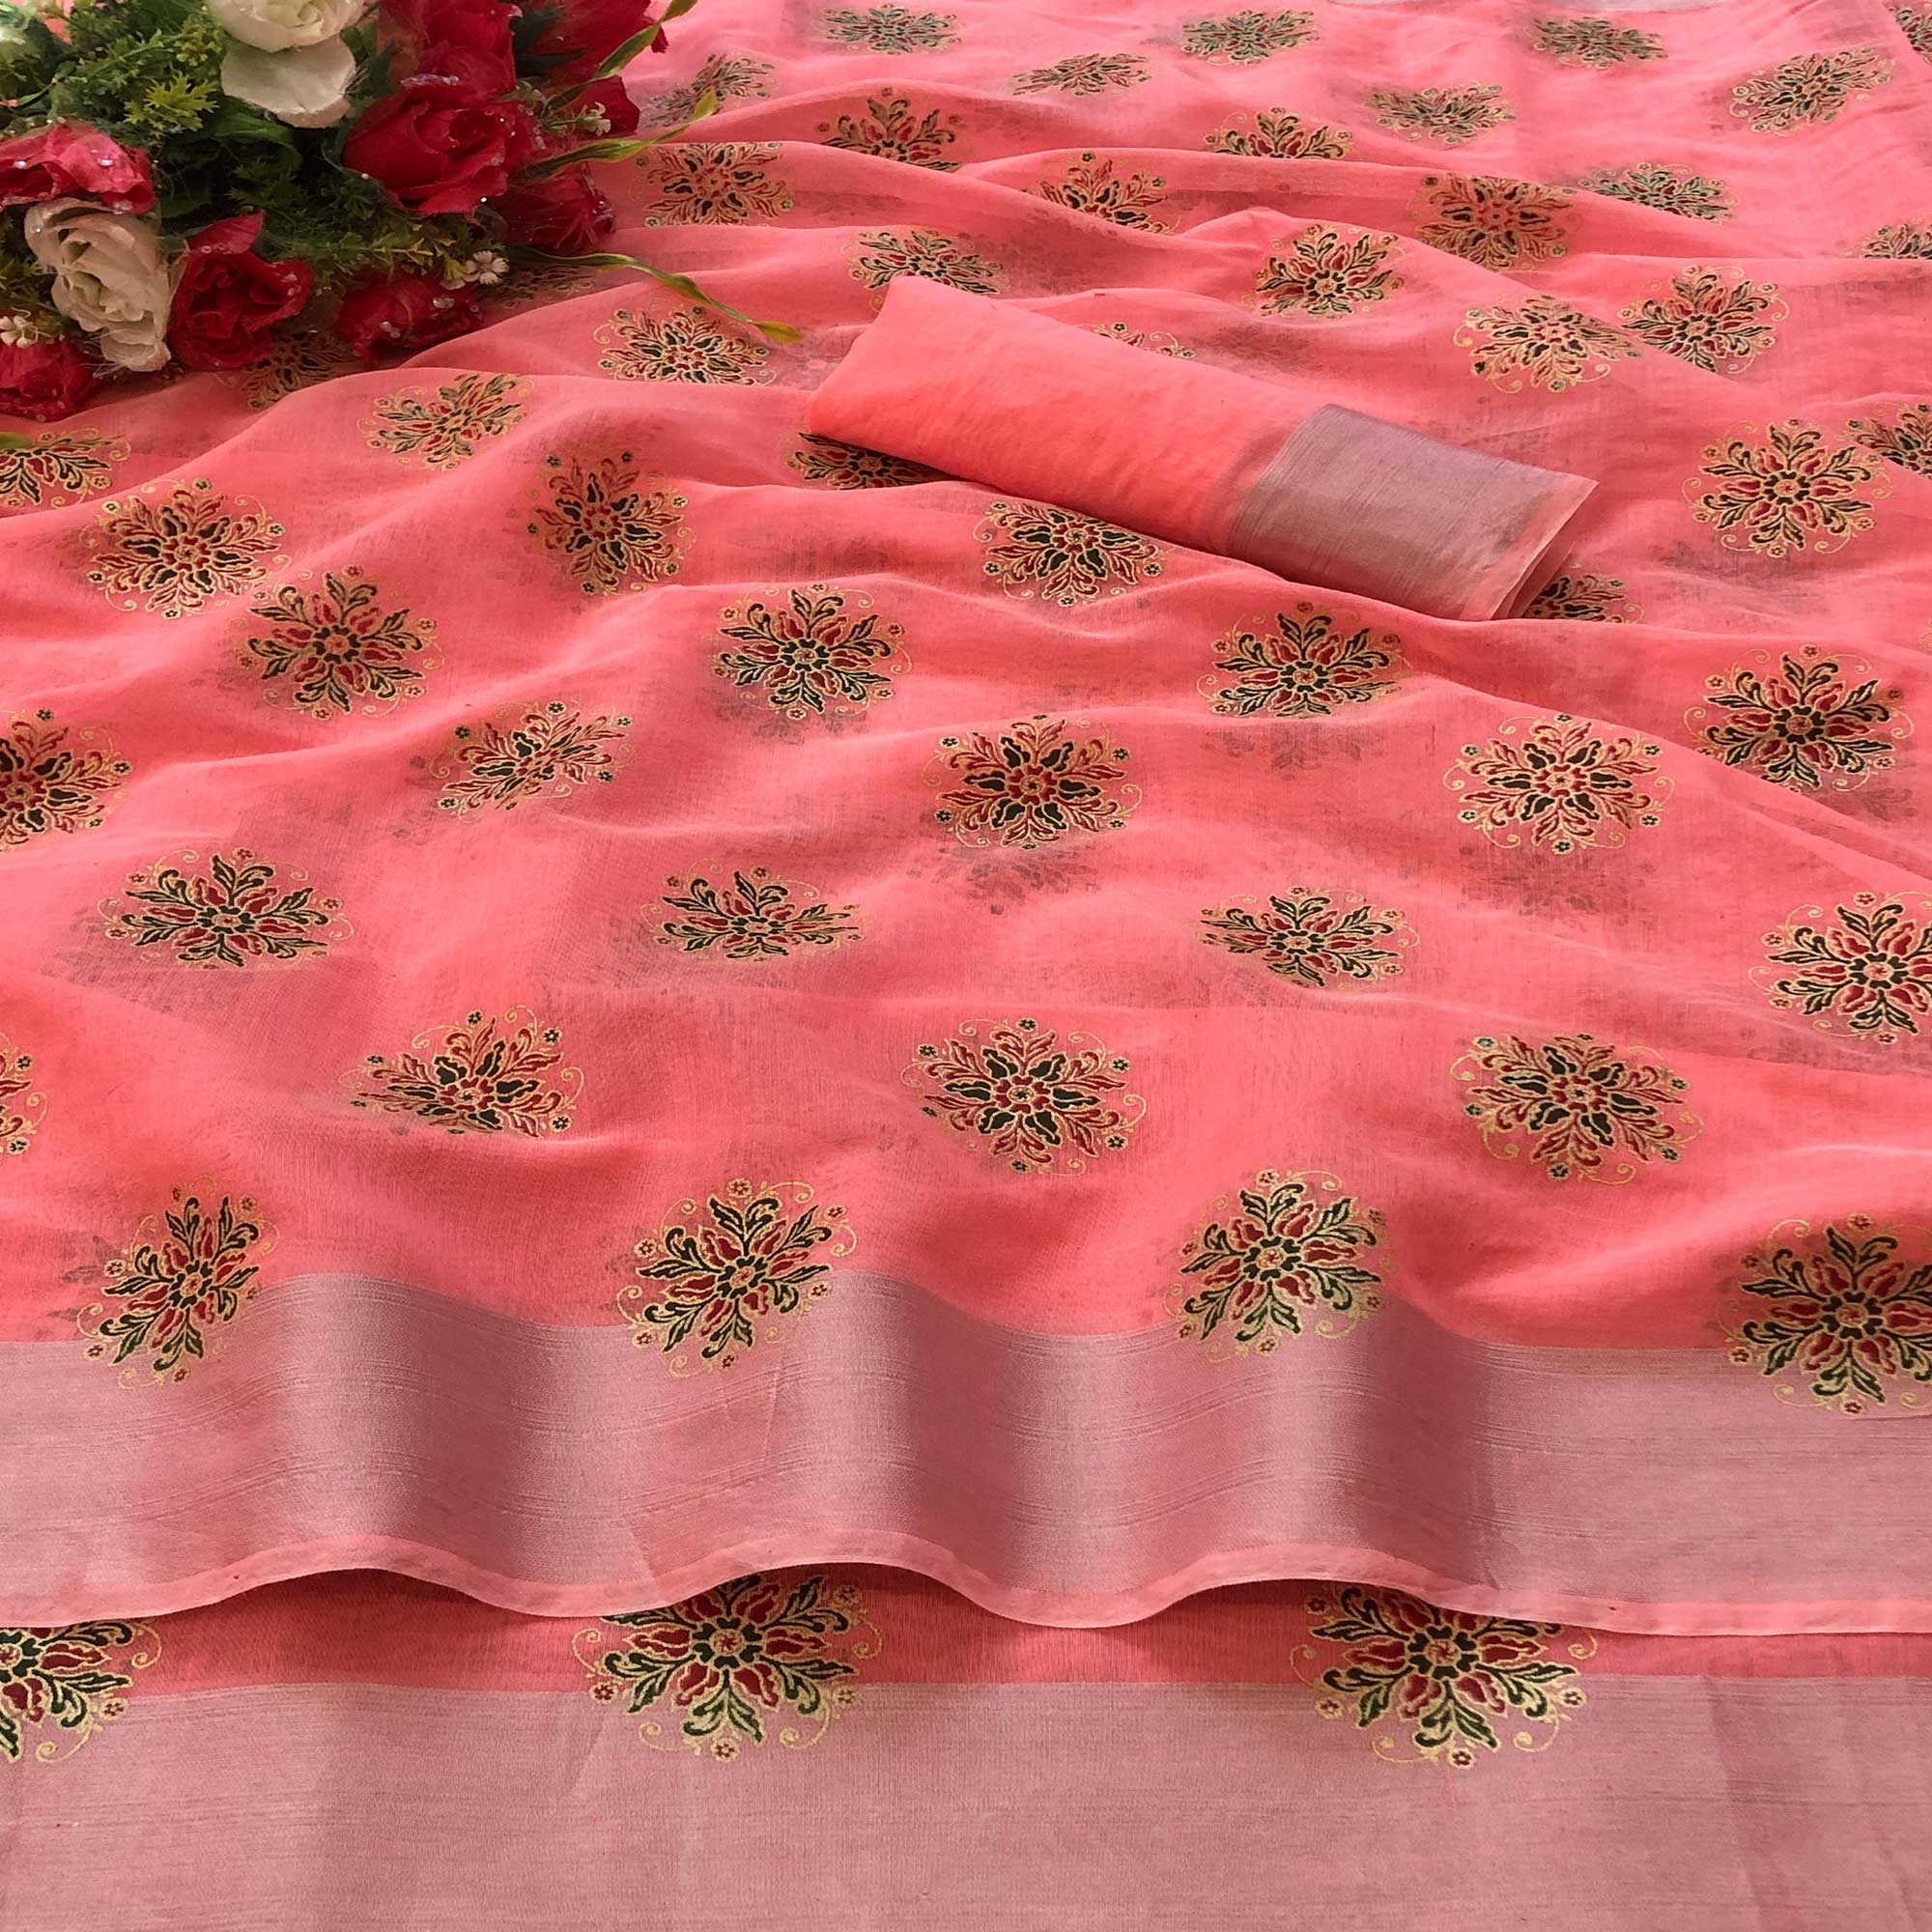 Exclusive Peach Colored Casual Wear Printed Chanderi Cotton Saree